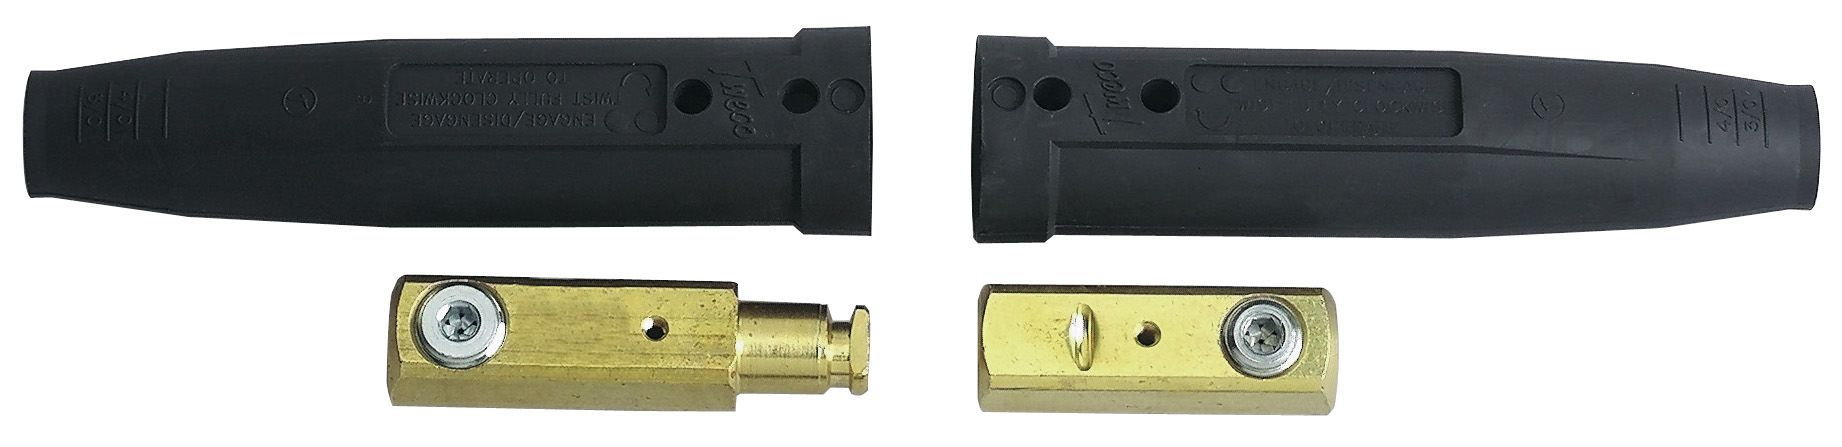 Tweco Weld Cable Connectors (Male/Female) - 2MPC